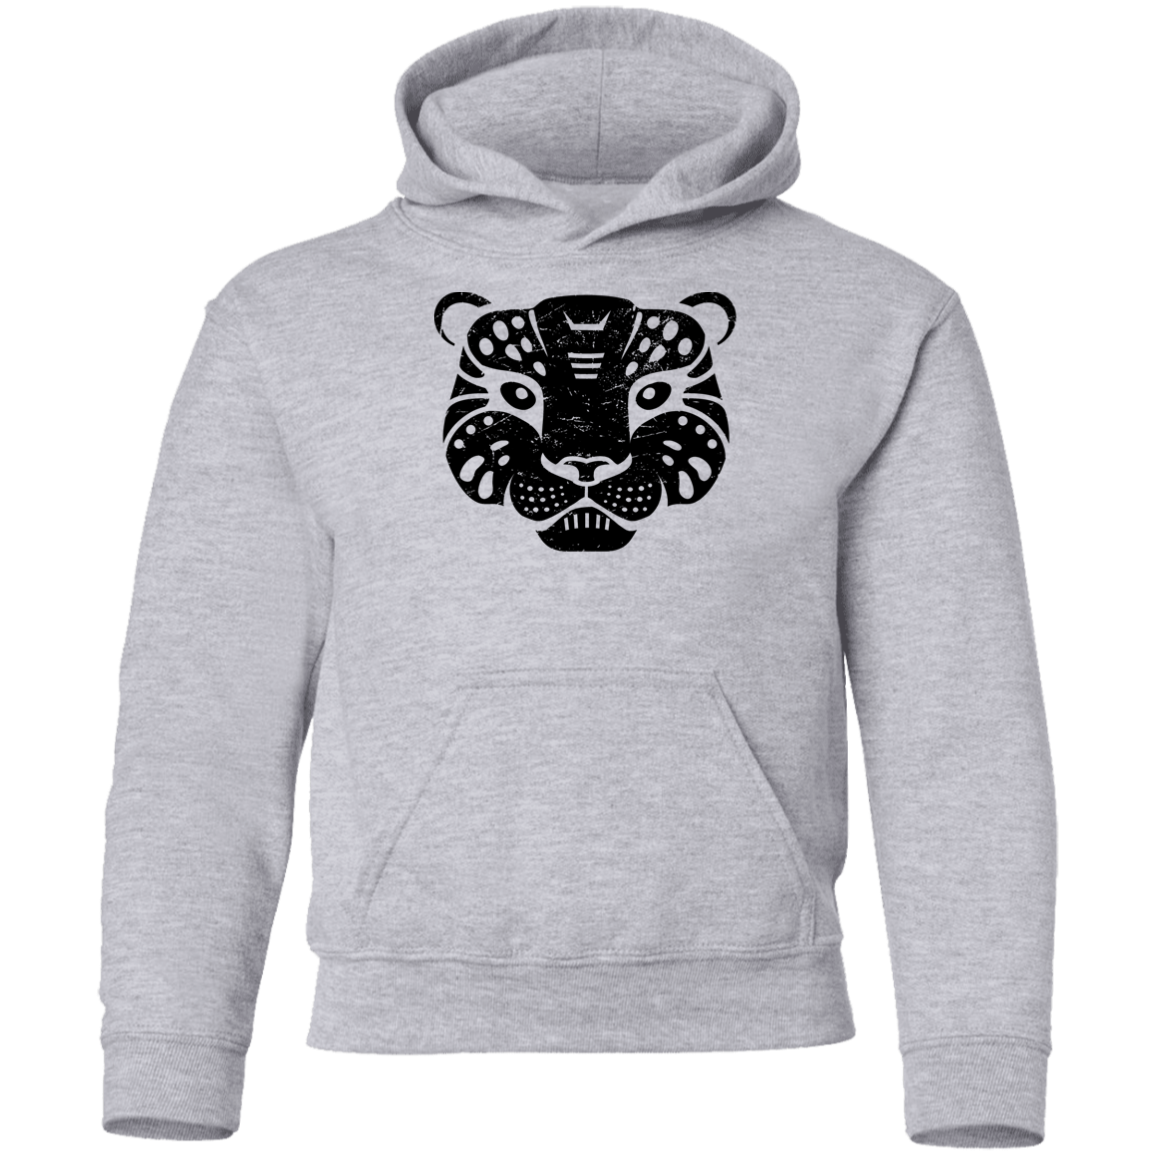 Black Distressed Emblem Hoodies for Kids (Snow Leopard/Denali)